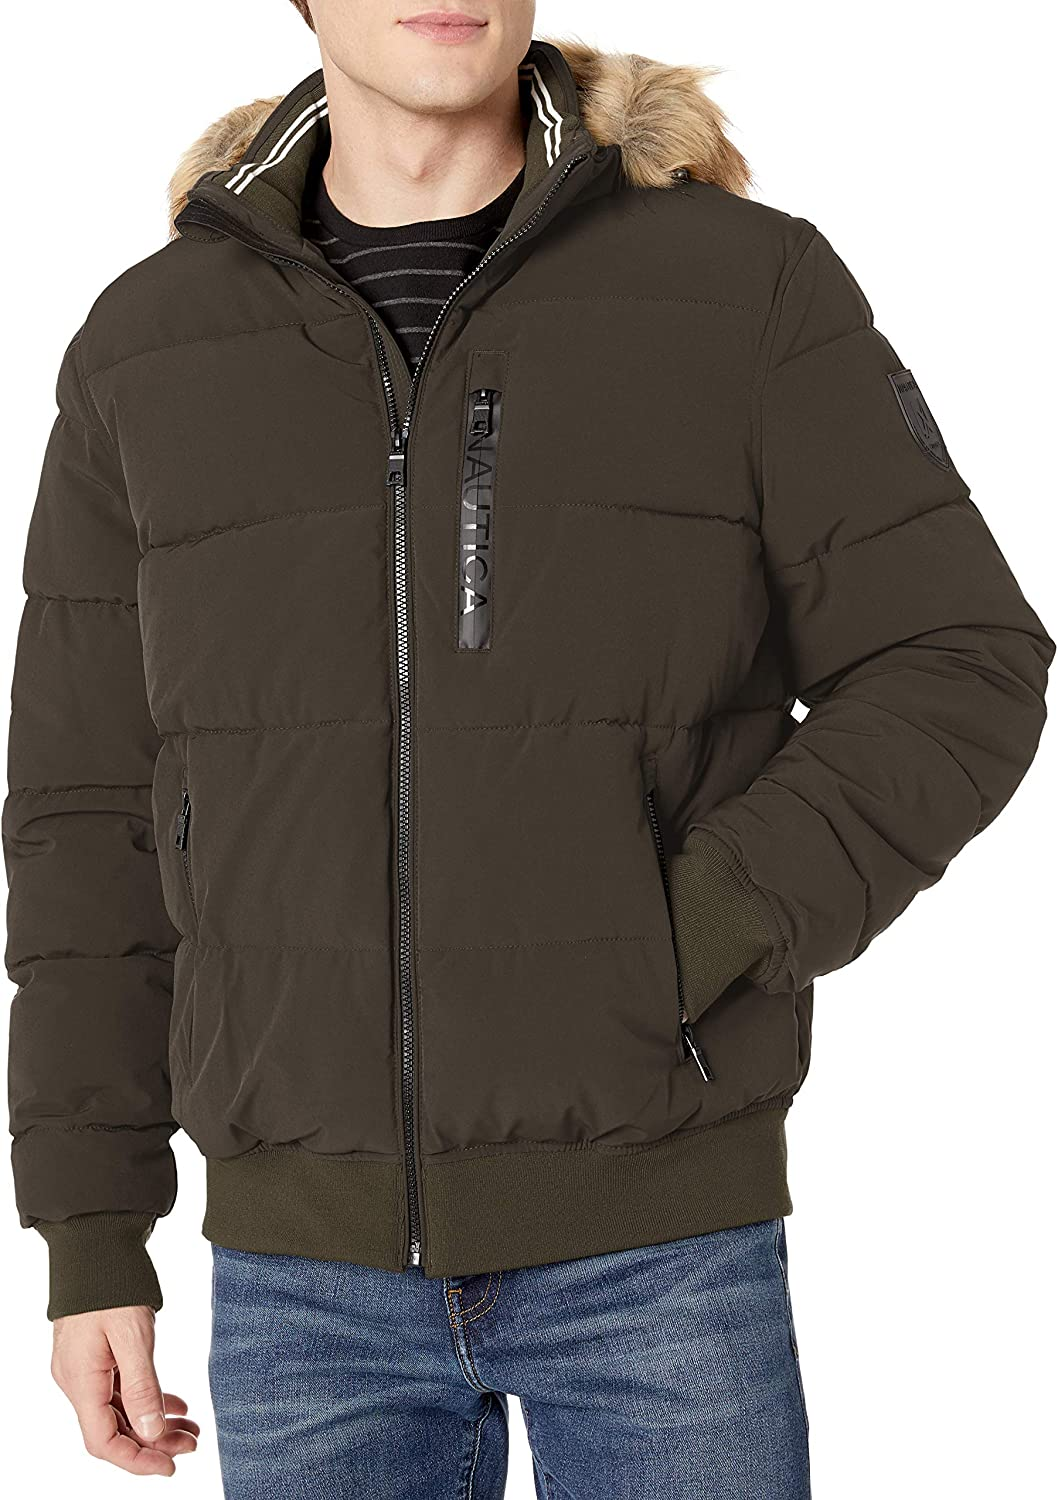 Nautica Mens Puffy Bomber with Fur Hood Jacket